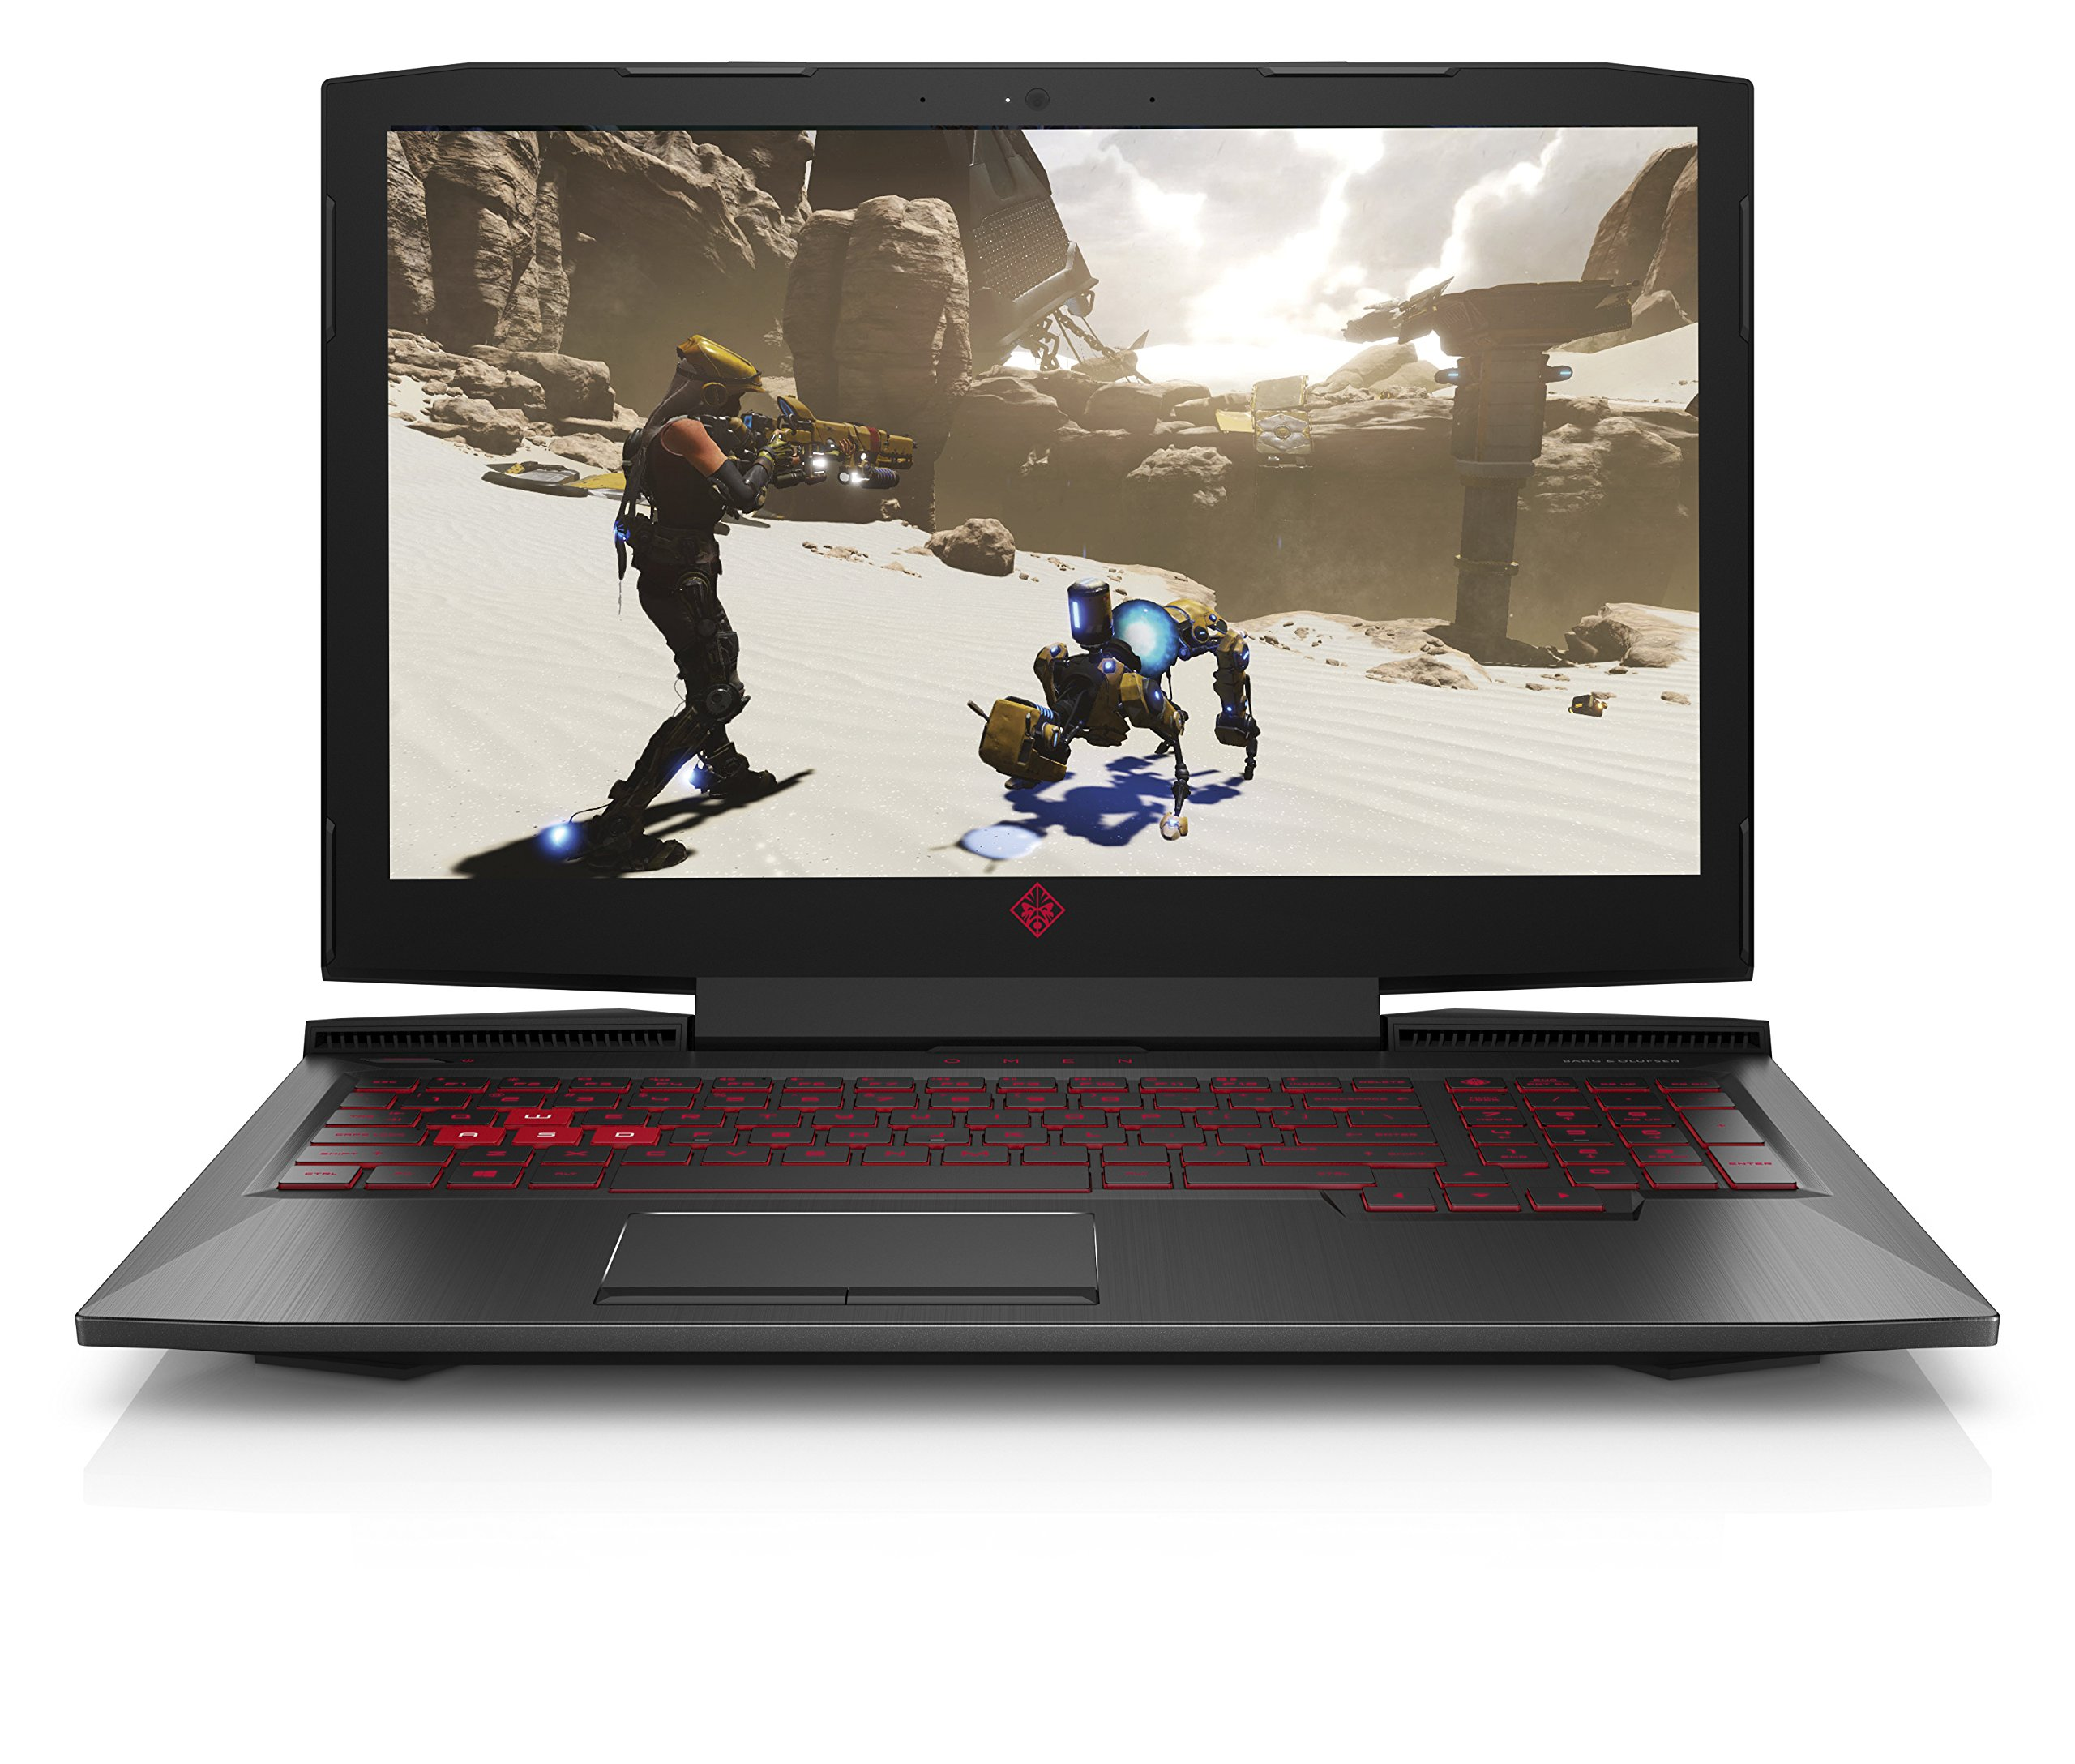 HP Omen 15-ce038ns – Portátil de 15.6″ Full HD (Intel Core i7-7700HQ, 16GB RAM, 128GB SSD + 1TB HDD,  Nvidia GeForce GTX 1050 Ti 4GB, Windows 10) negro – Teclado QWERTY Español